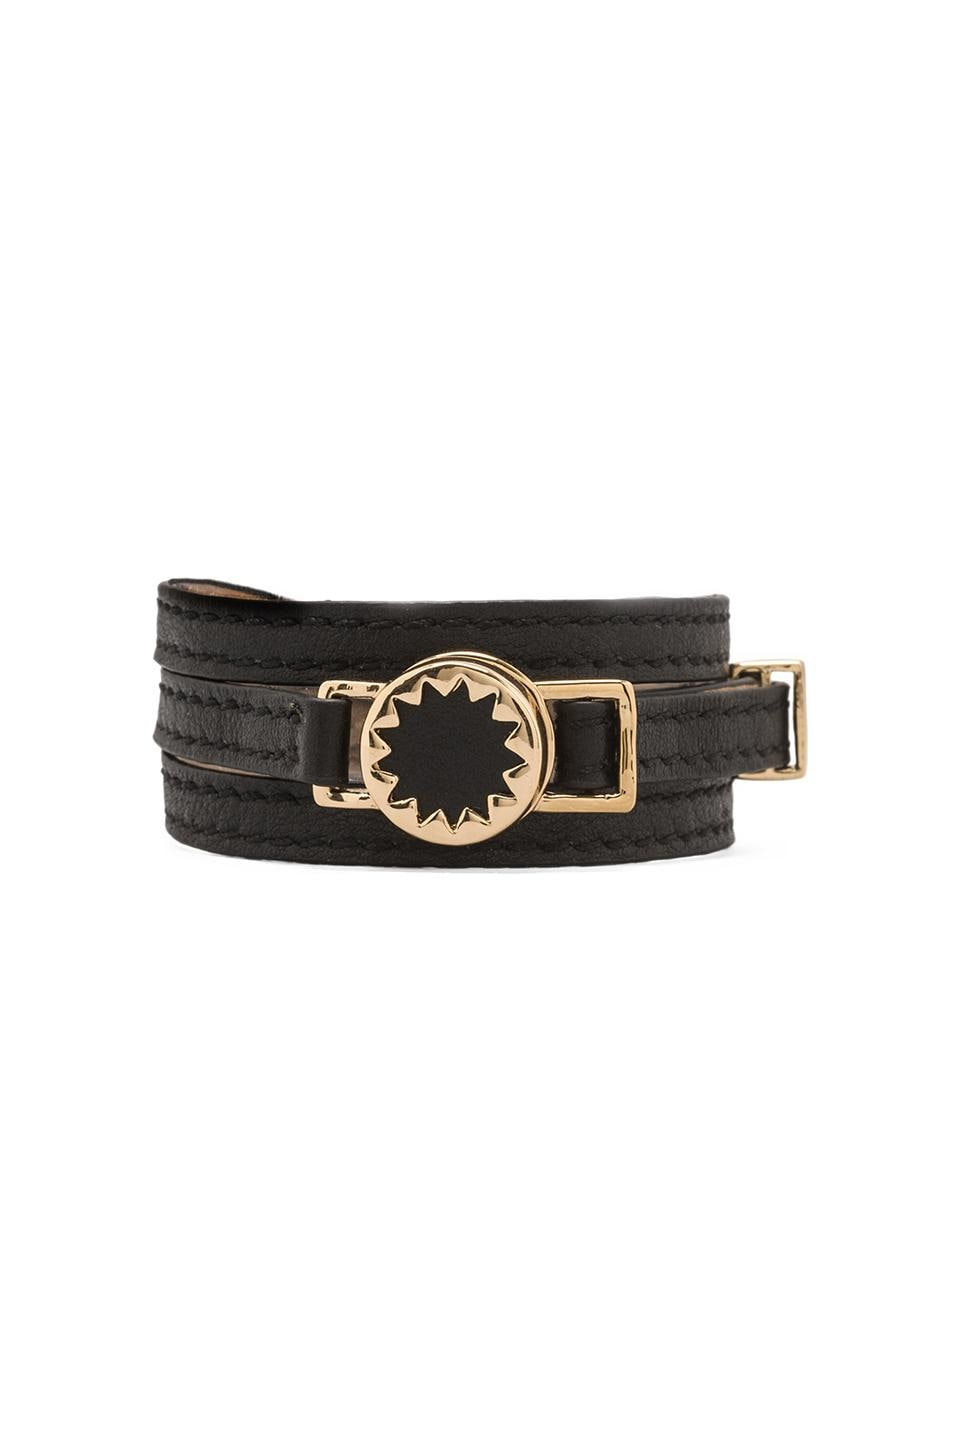 House of Harlow Sunburst Wrap Bracelet in Gold Tone Sunburst with Black